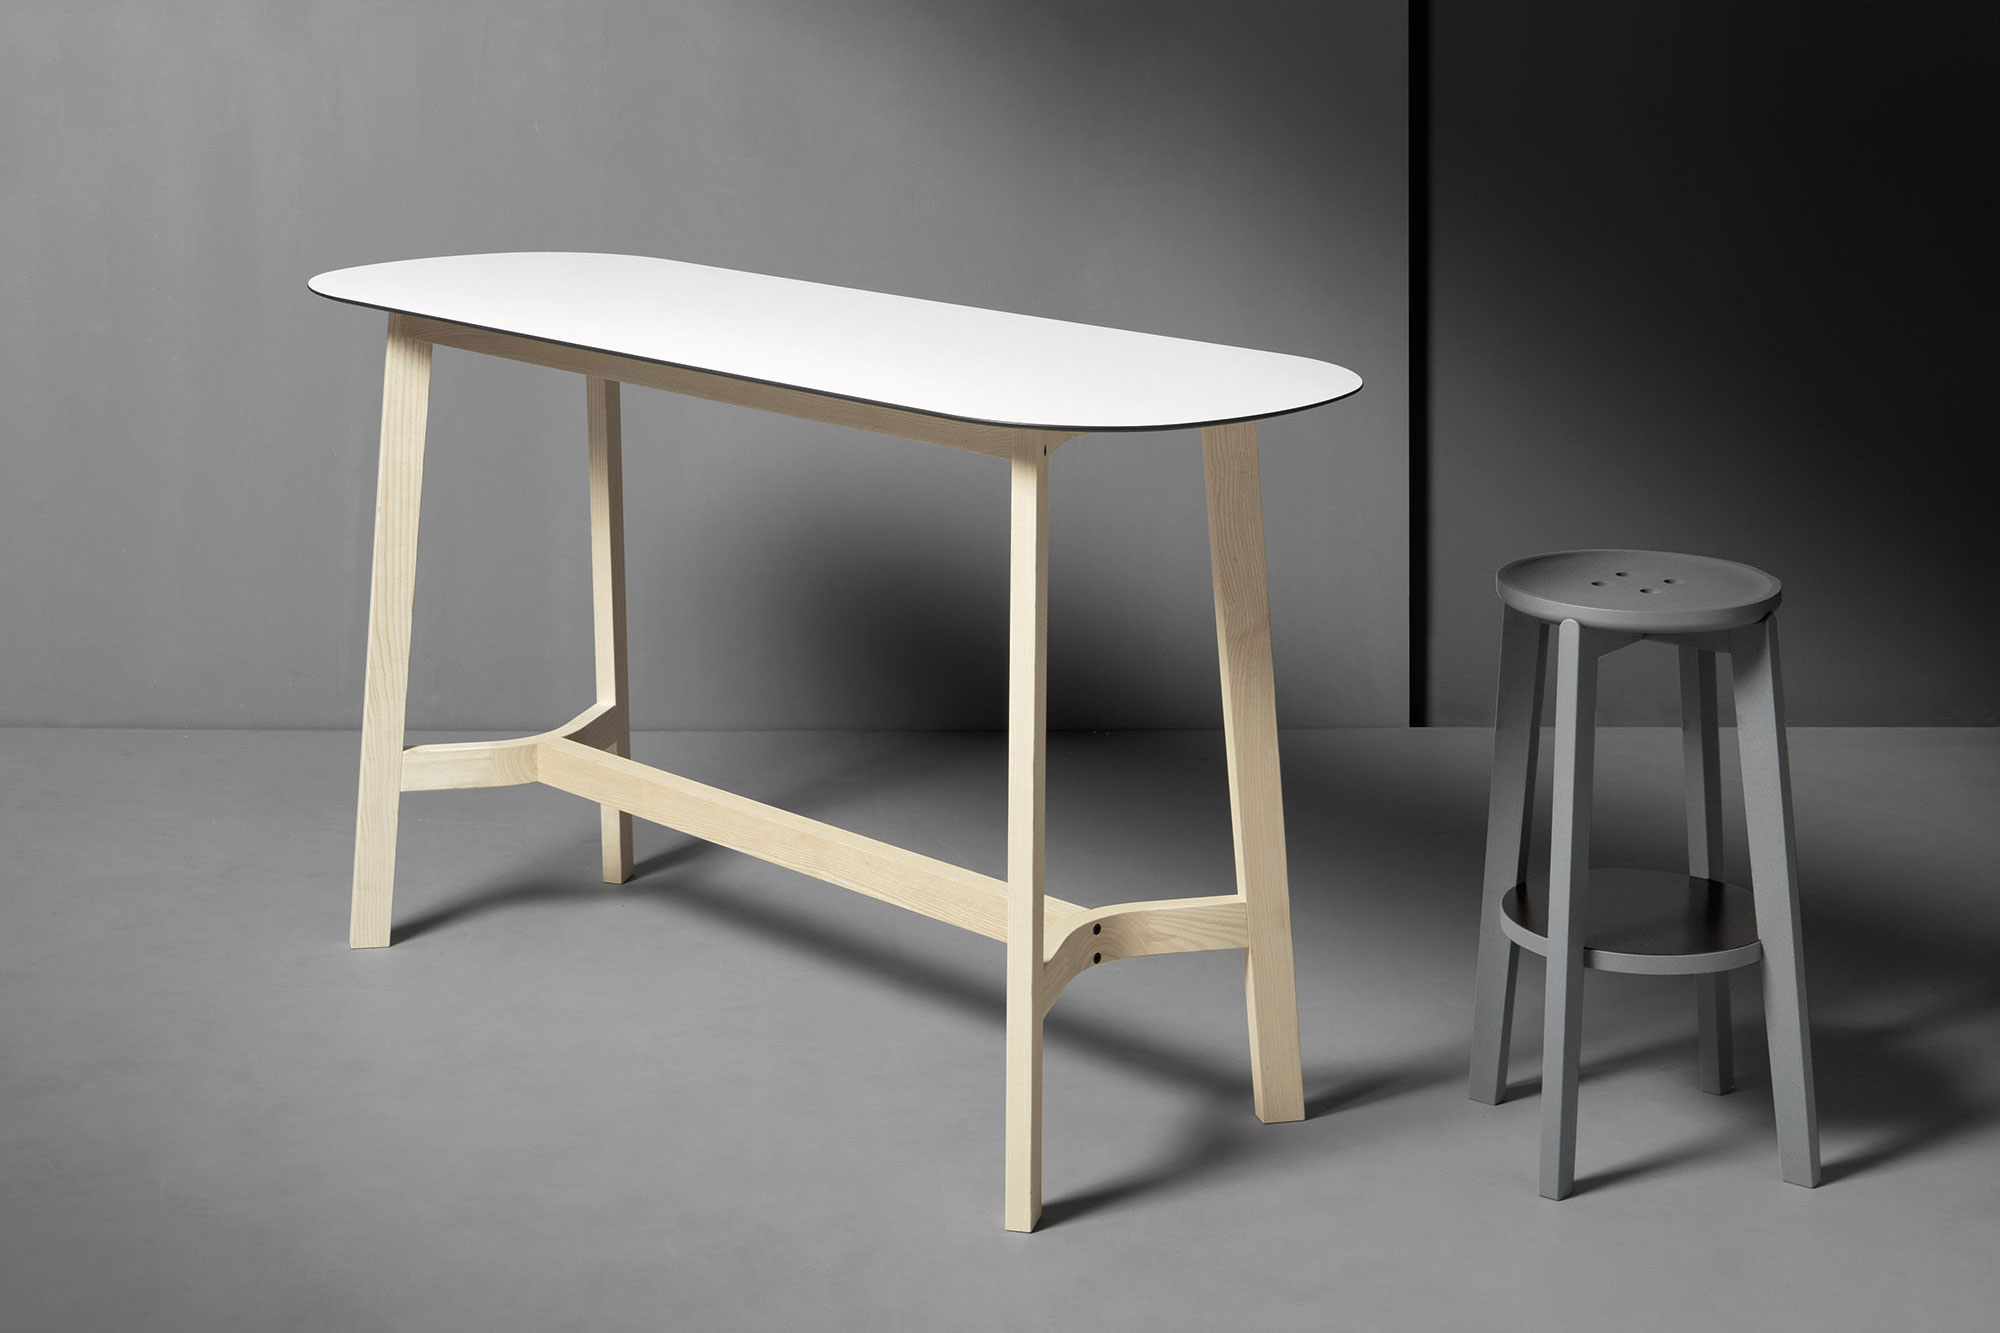 VERY_WOOD_Rond_Table_T08FX_Rond_16_web.jpg